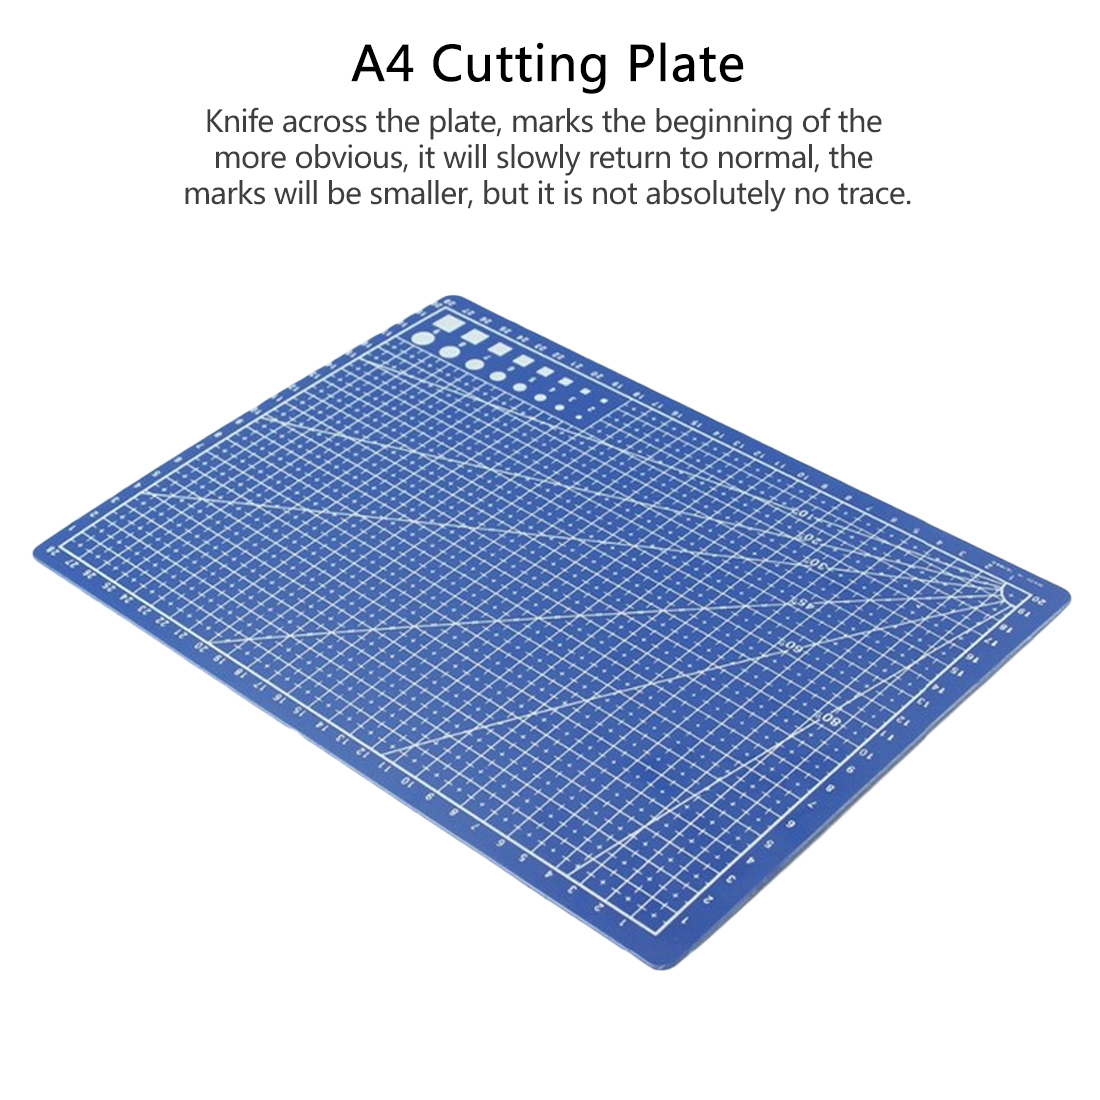 Cutting Plate 1PC A4 Grid Lines Self Healing Cutting Mat Craft Card Paper Board 30 X 22cm Blue